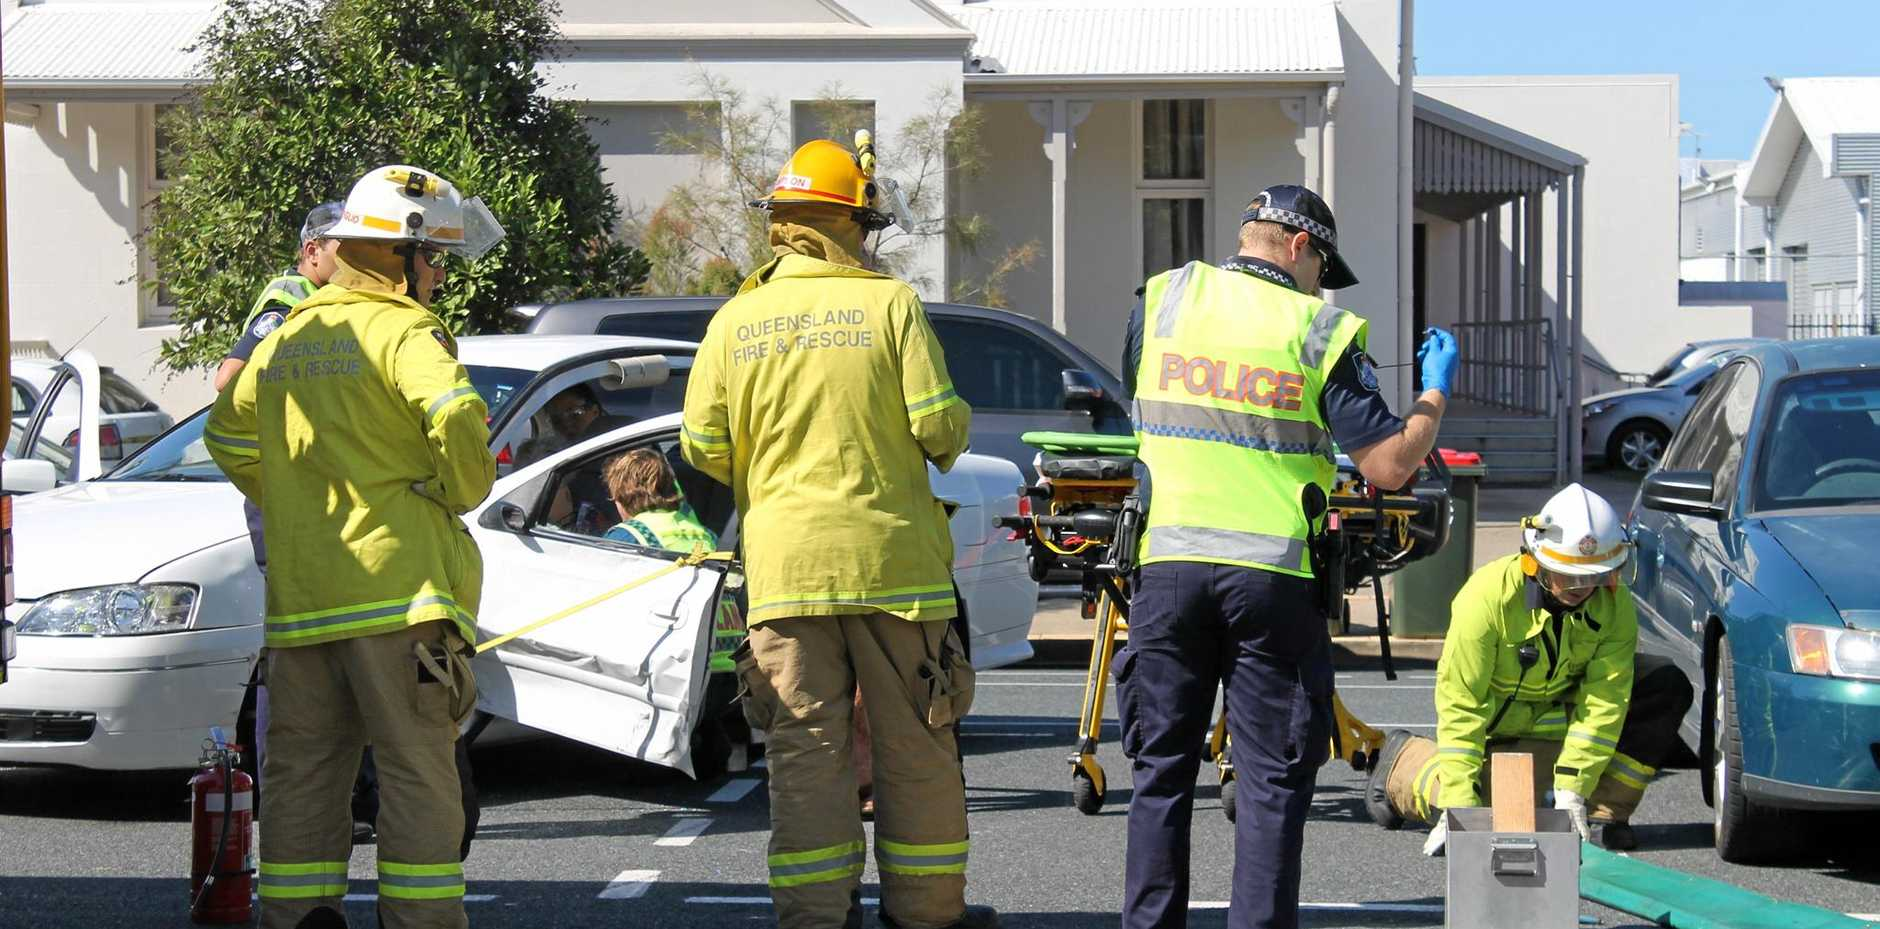 Firefighters work to free an elderly woman after a crash on Gordon St, where it intersects with Macalister St, in Mackay city.